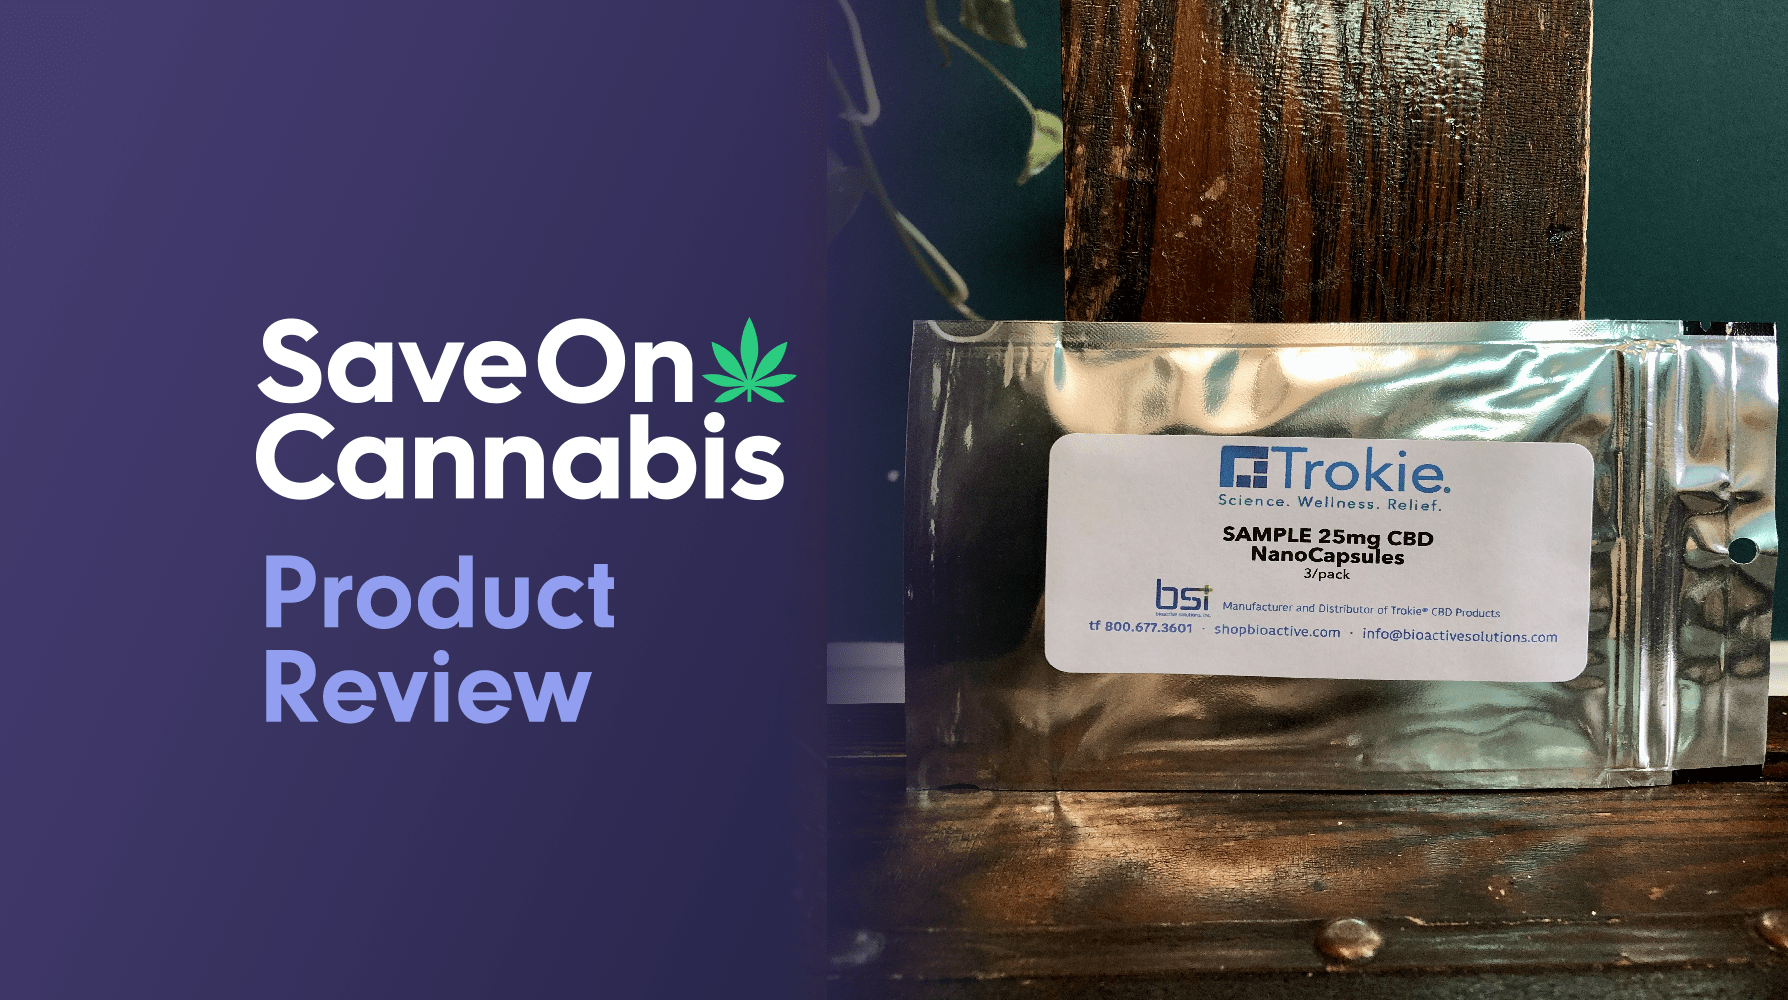 Trokie CBD Nanocapsules Save On Cannabis Review Website